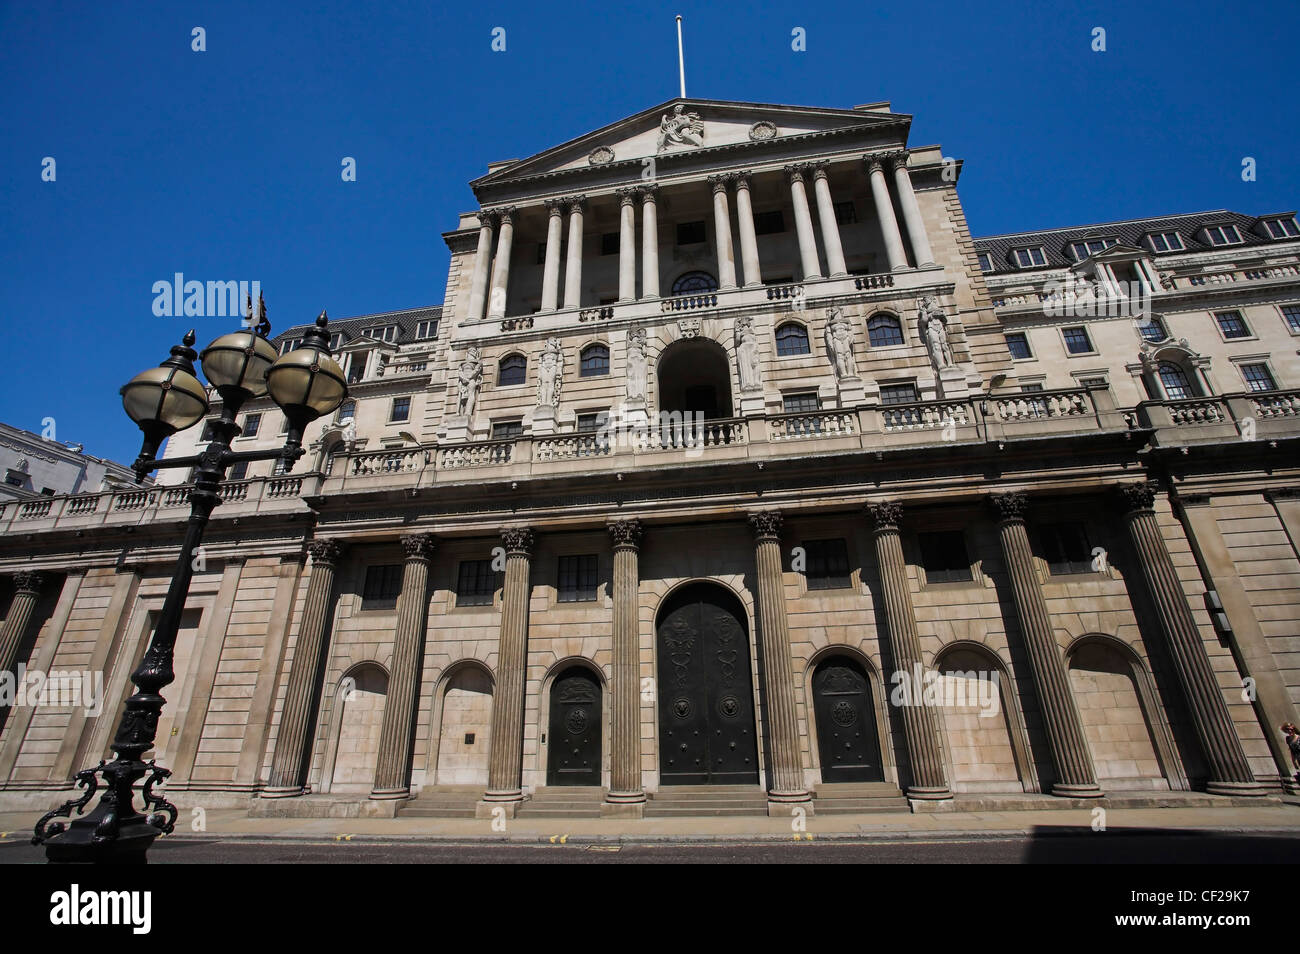 The Bank of England, the central bank to the UK in Threadneedle Street in the City of London. - Stock Image